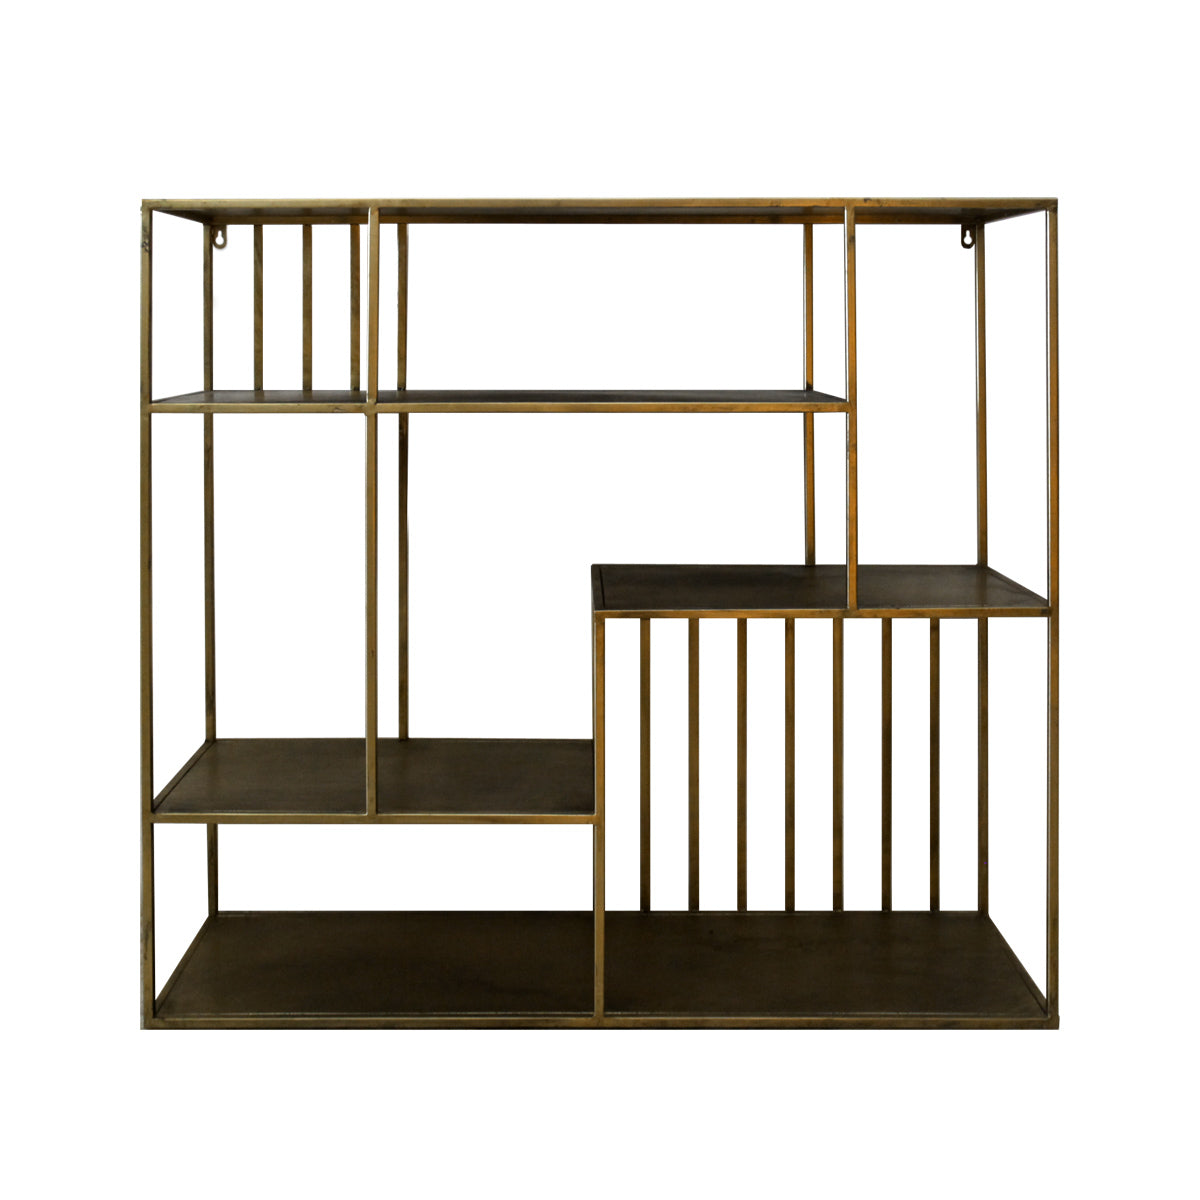 Nile Wall Rack - Rustic Gold